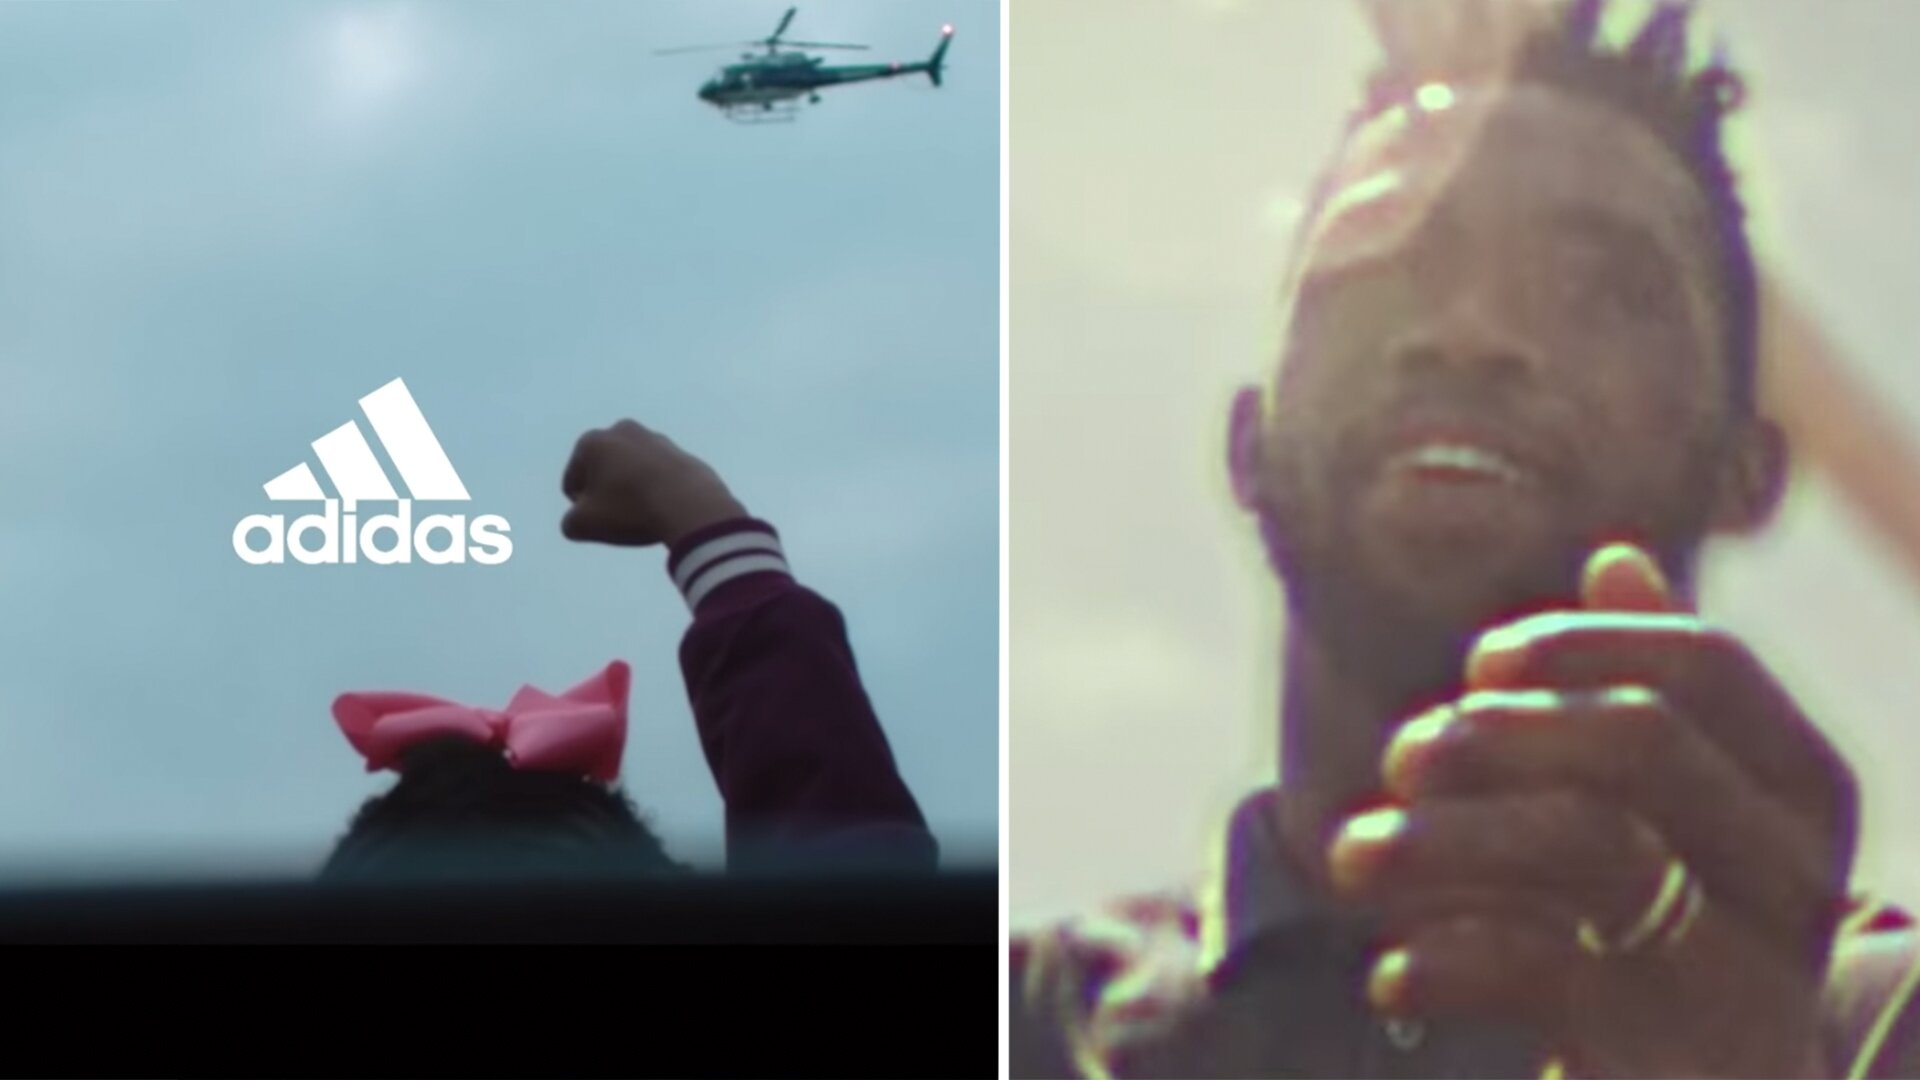 Siya Kolisi has become the face of Adidas as stunning new video drops